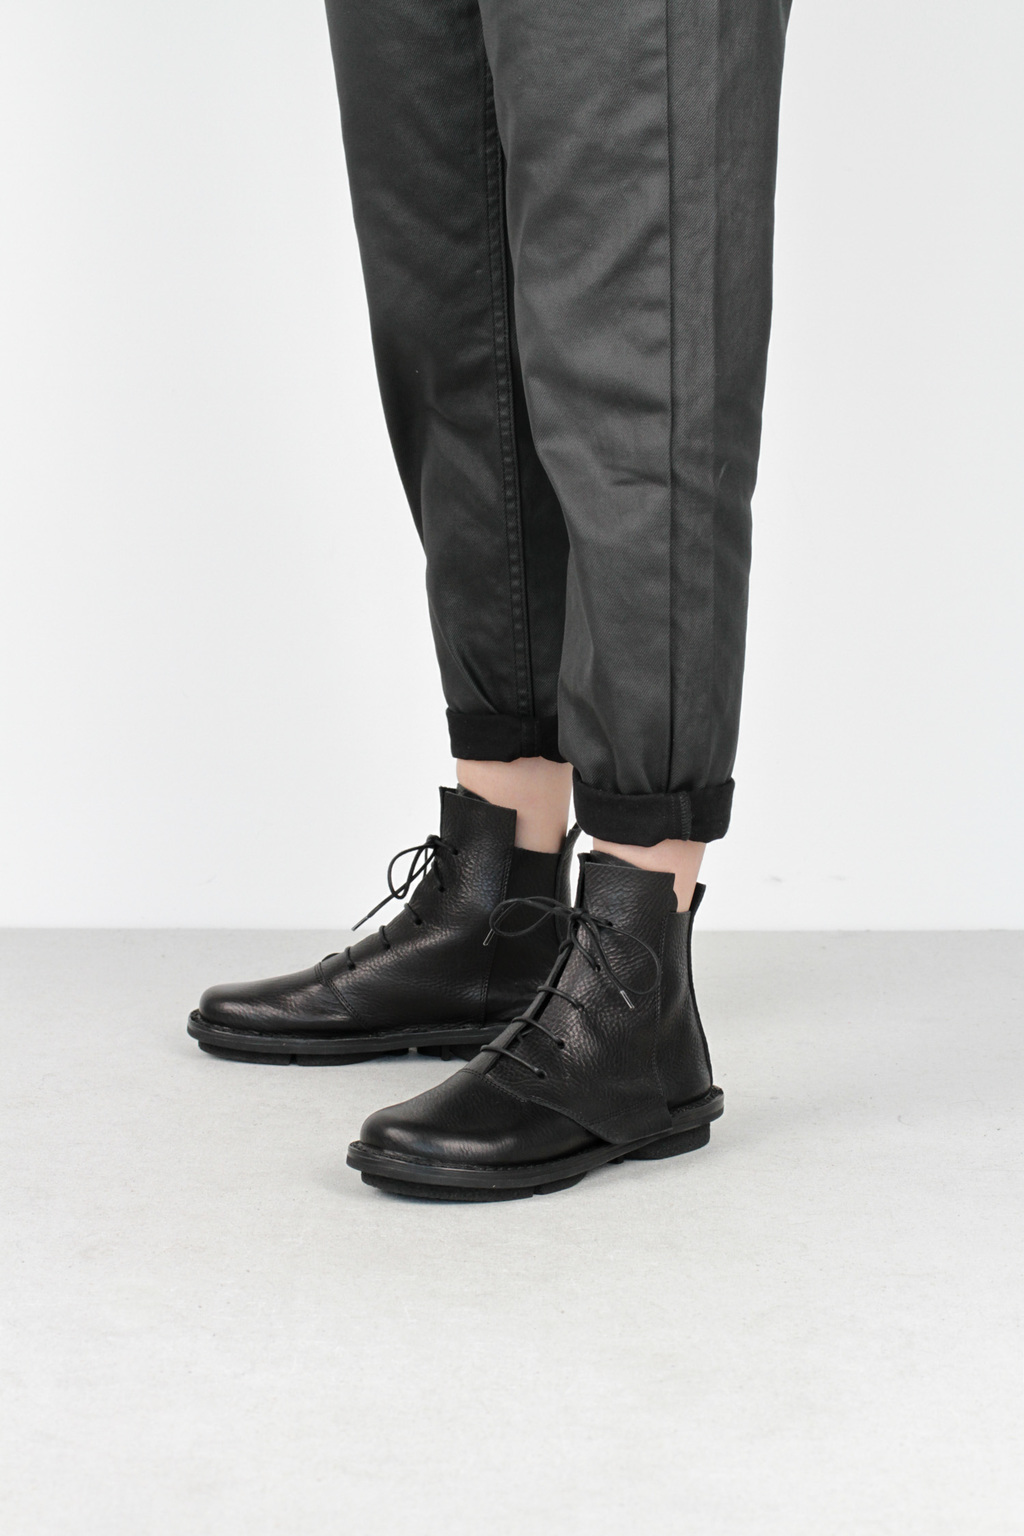 Trippen lumber f black waw leather boots